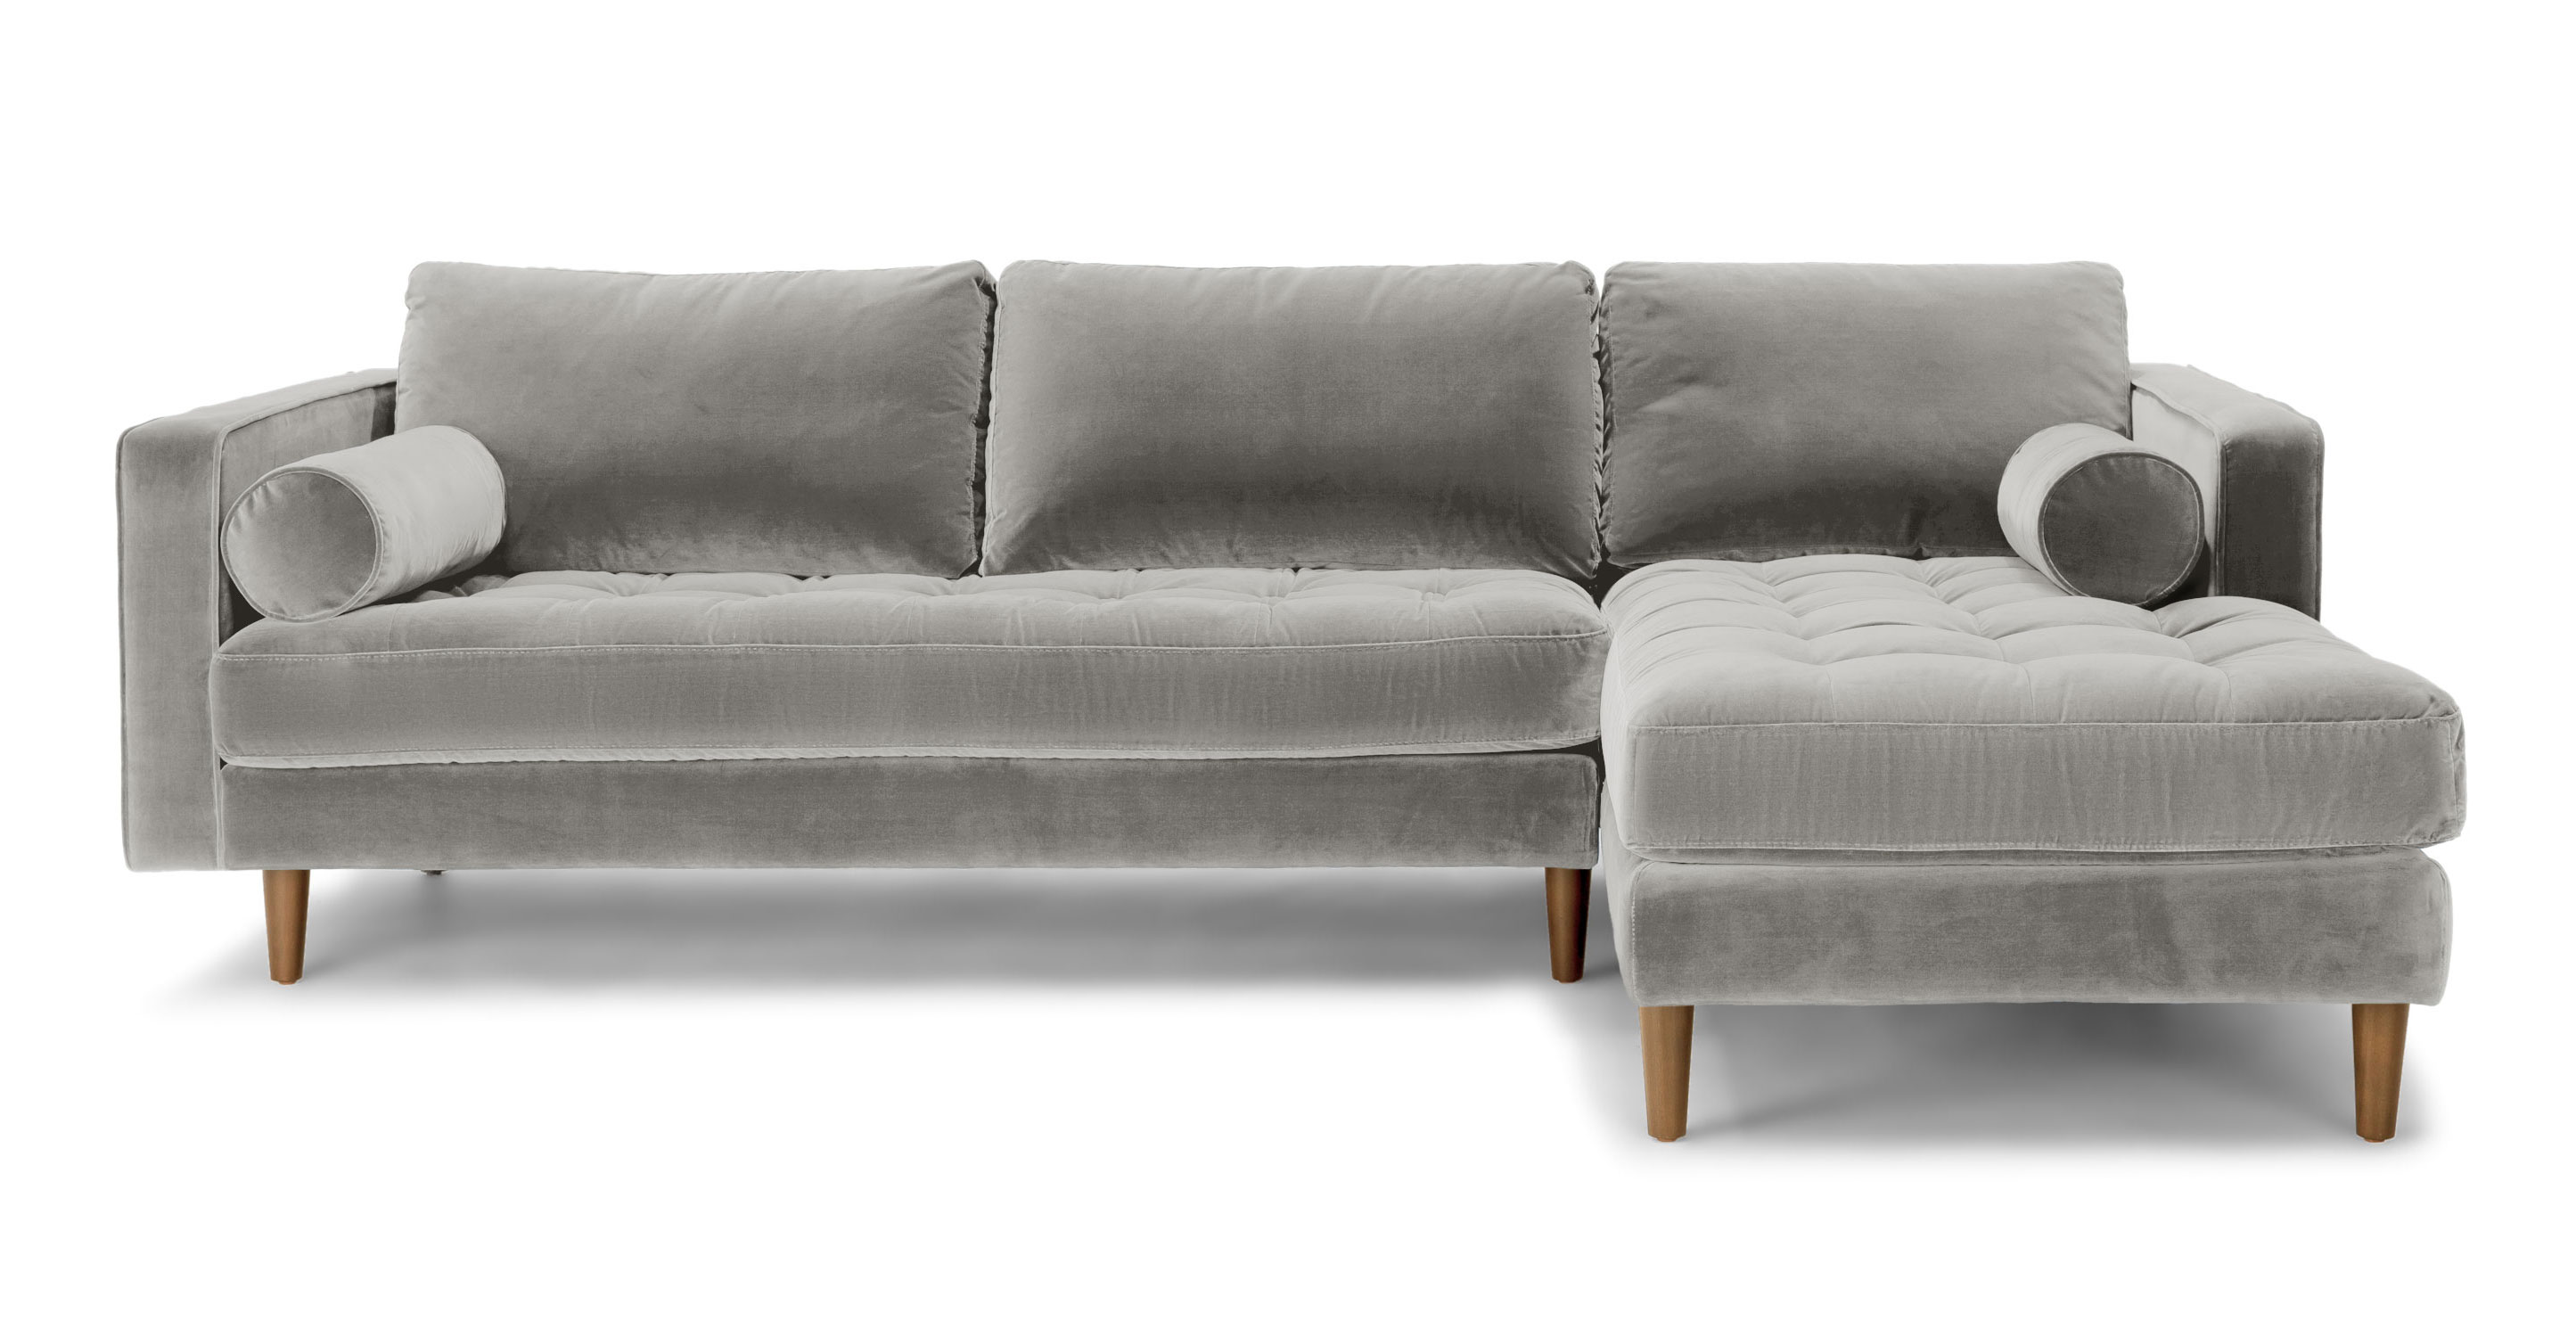 the dump sofa beds boconcept carlton review sven intuition gray right sectional sectionals